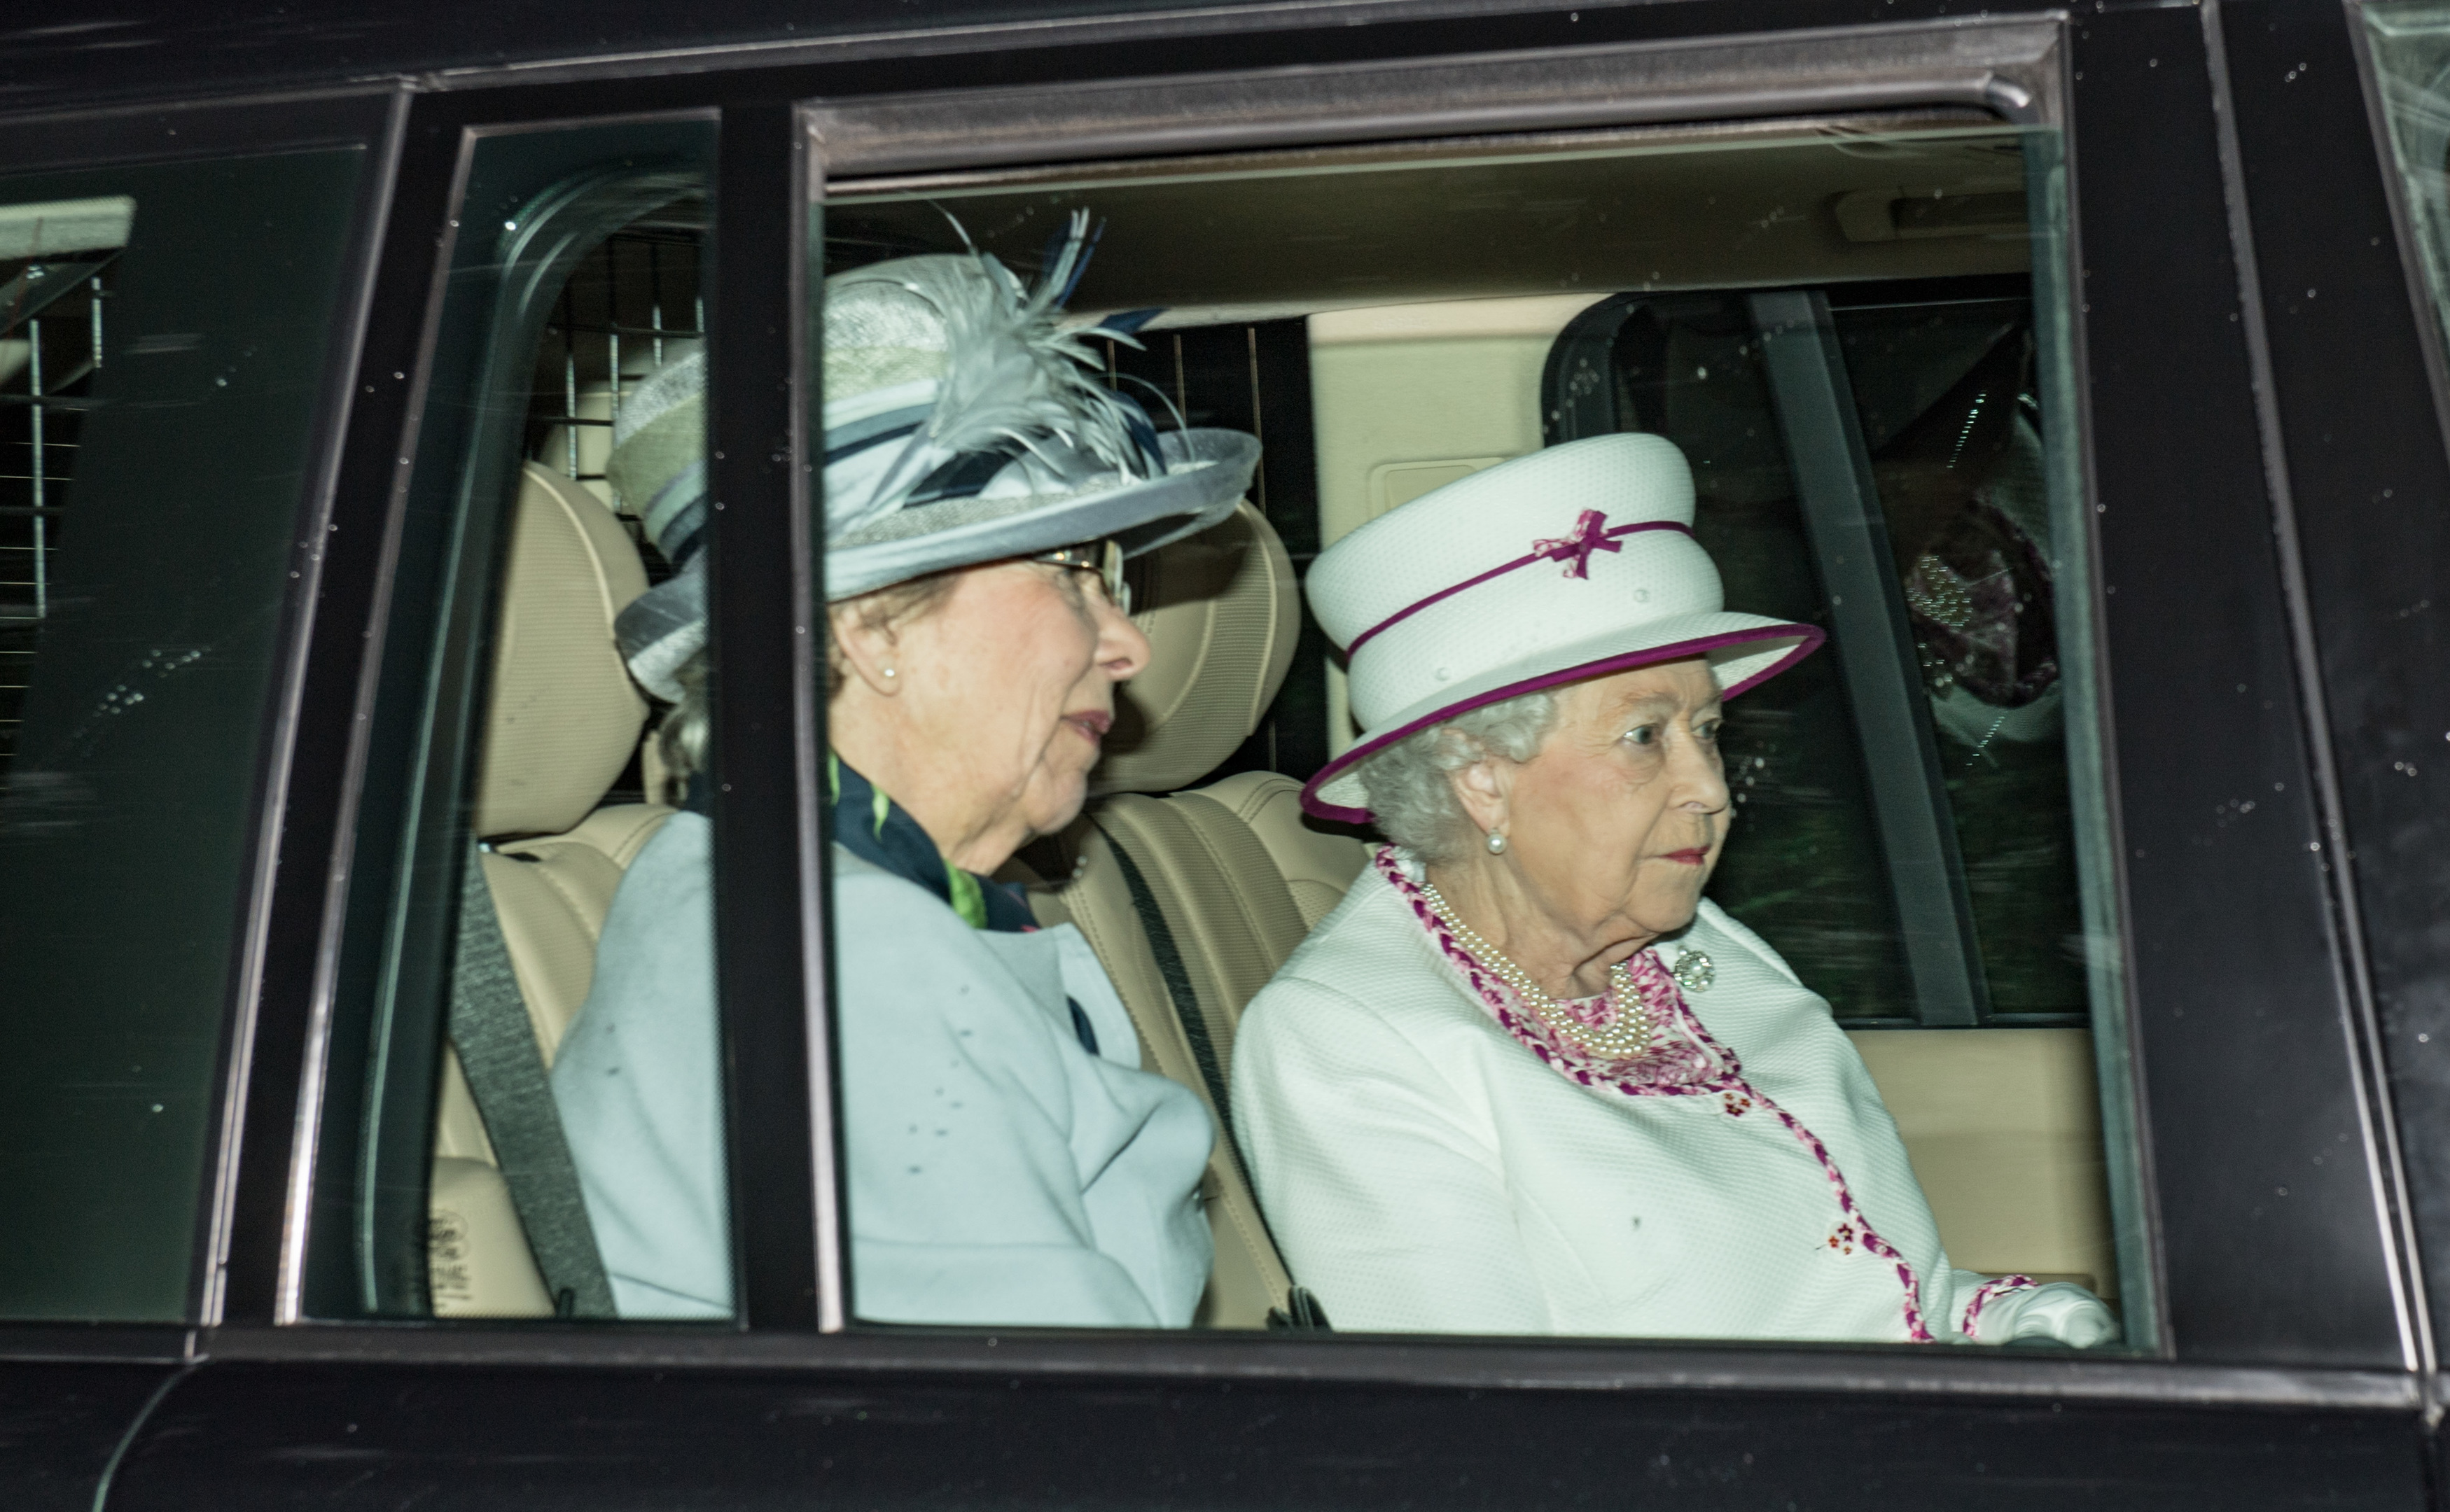 Ballater, Scotland, Friday 21st July 2017   Pictures is The Queen arriving at Crathie Kirk on the first Sunday of her Summer break at Balmoral Castle.  Picture by Michal Wachucik / Abermedia